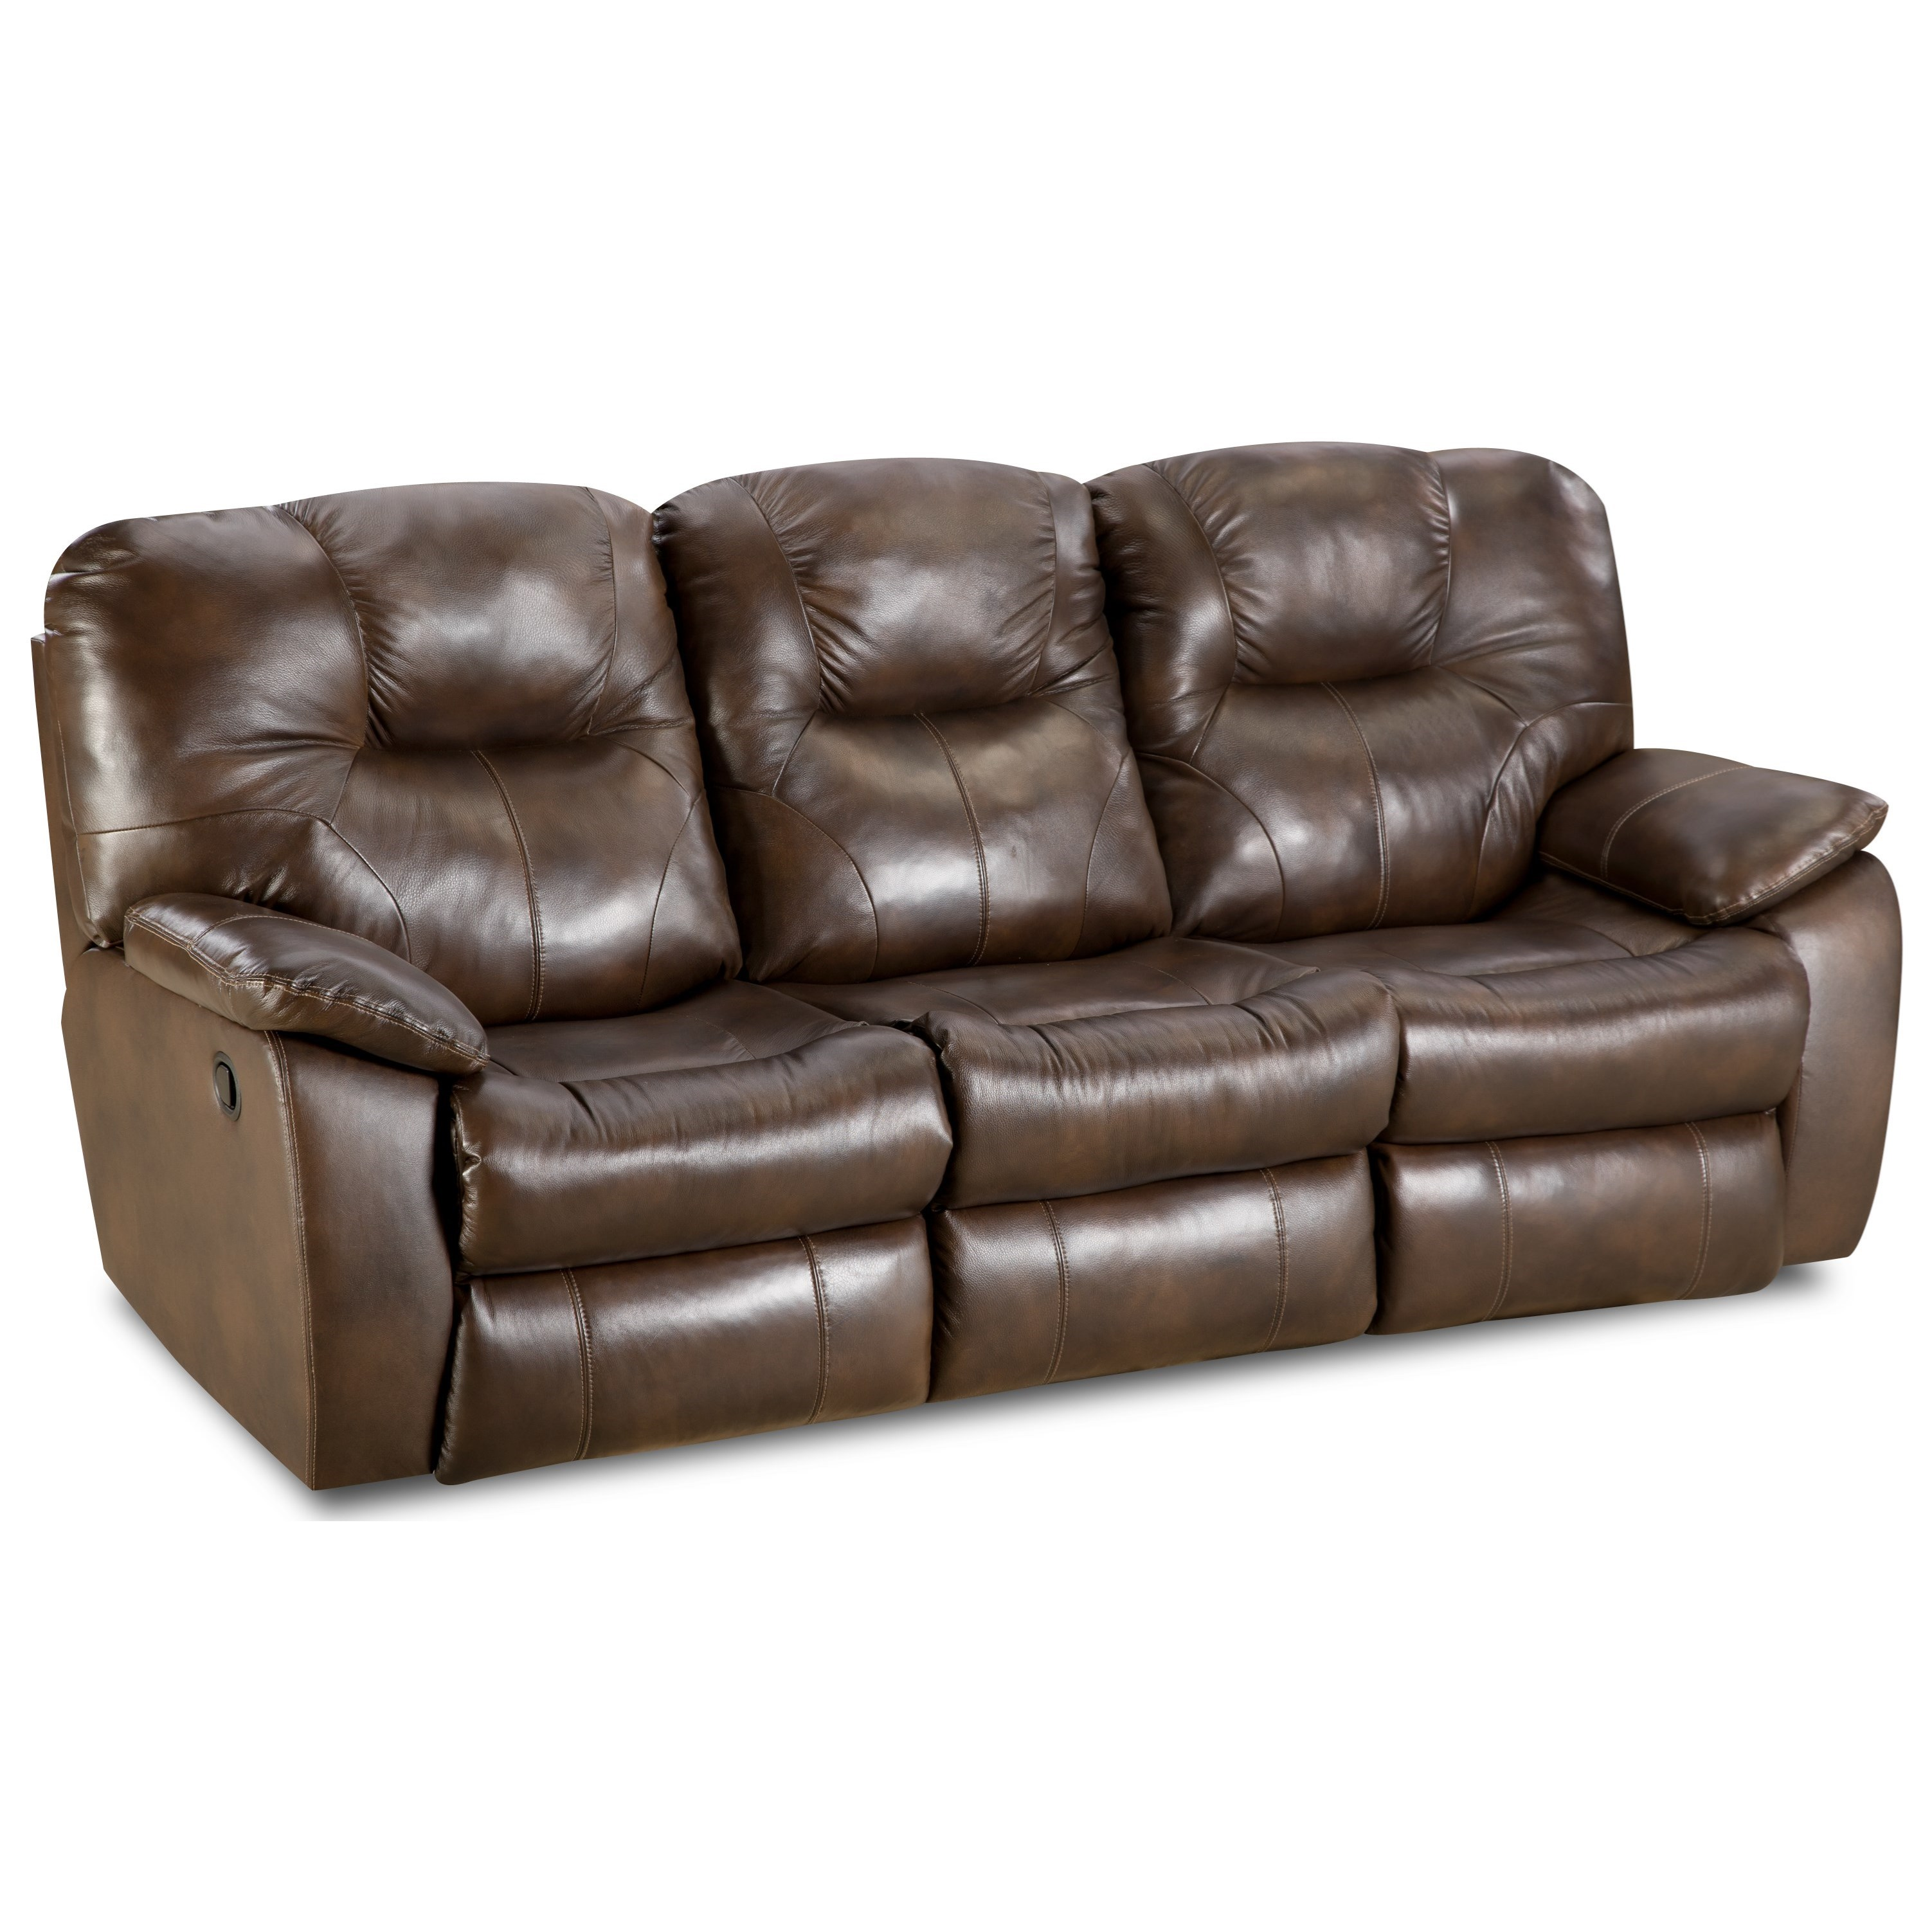 Avalon Power Headrest Reclining Sofa by Southern Motion at Lapeer Furniture & Mattress Center